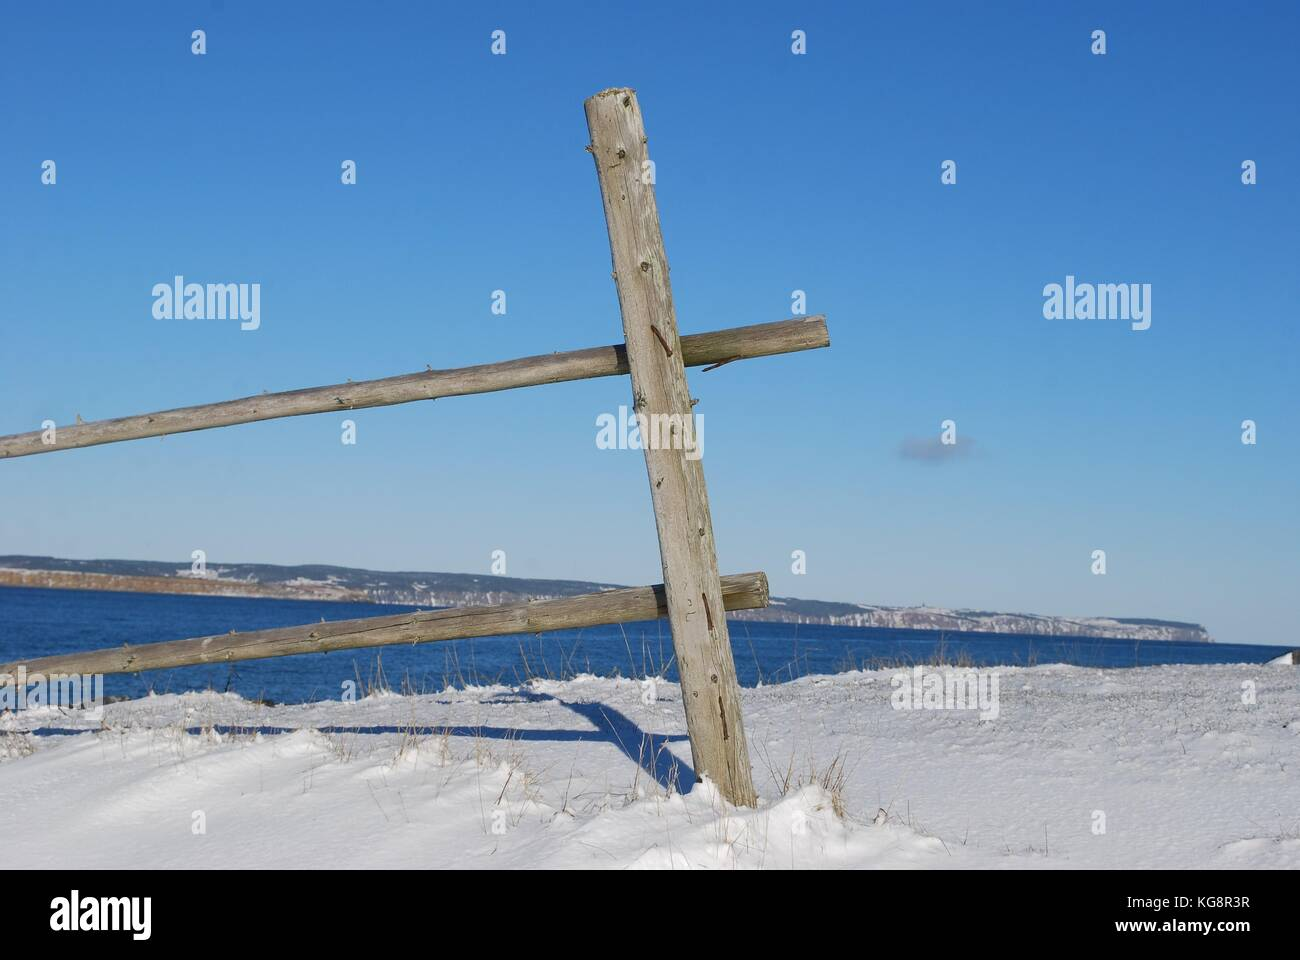 Fence post and two rails of an old, disused fence along the shoreline, Conception Bay South, Newfoundland - Stock Image